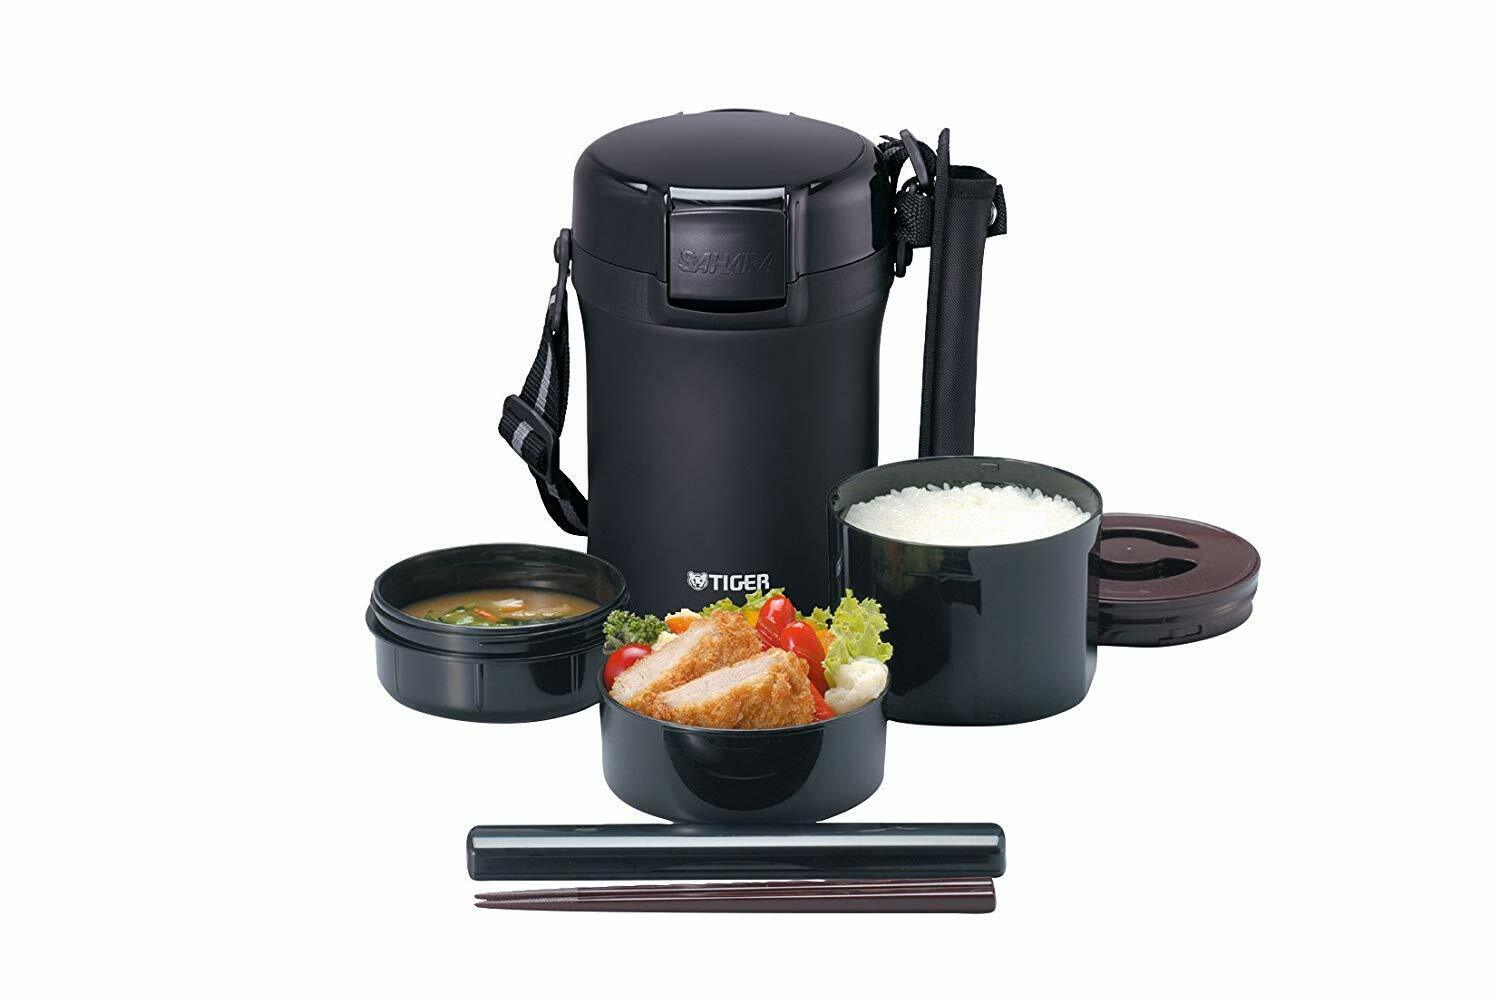 Tiger Thermos Stainless lunch box vide Bento Box, LWU-A172